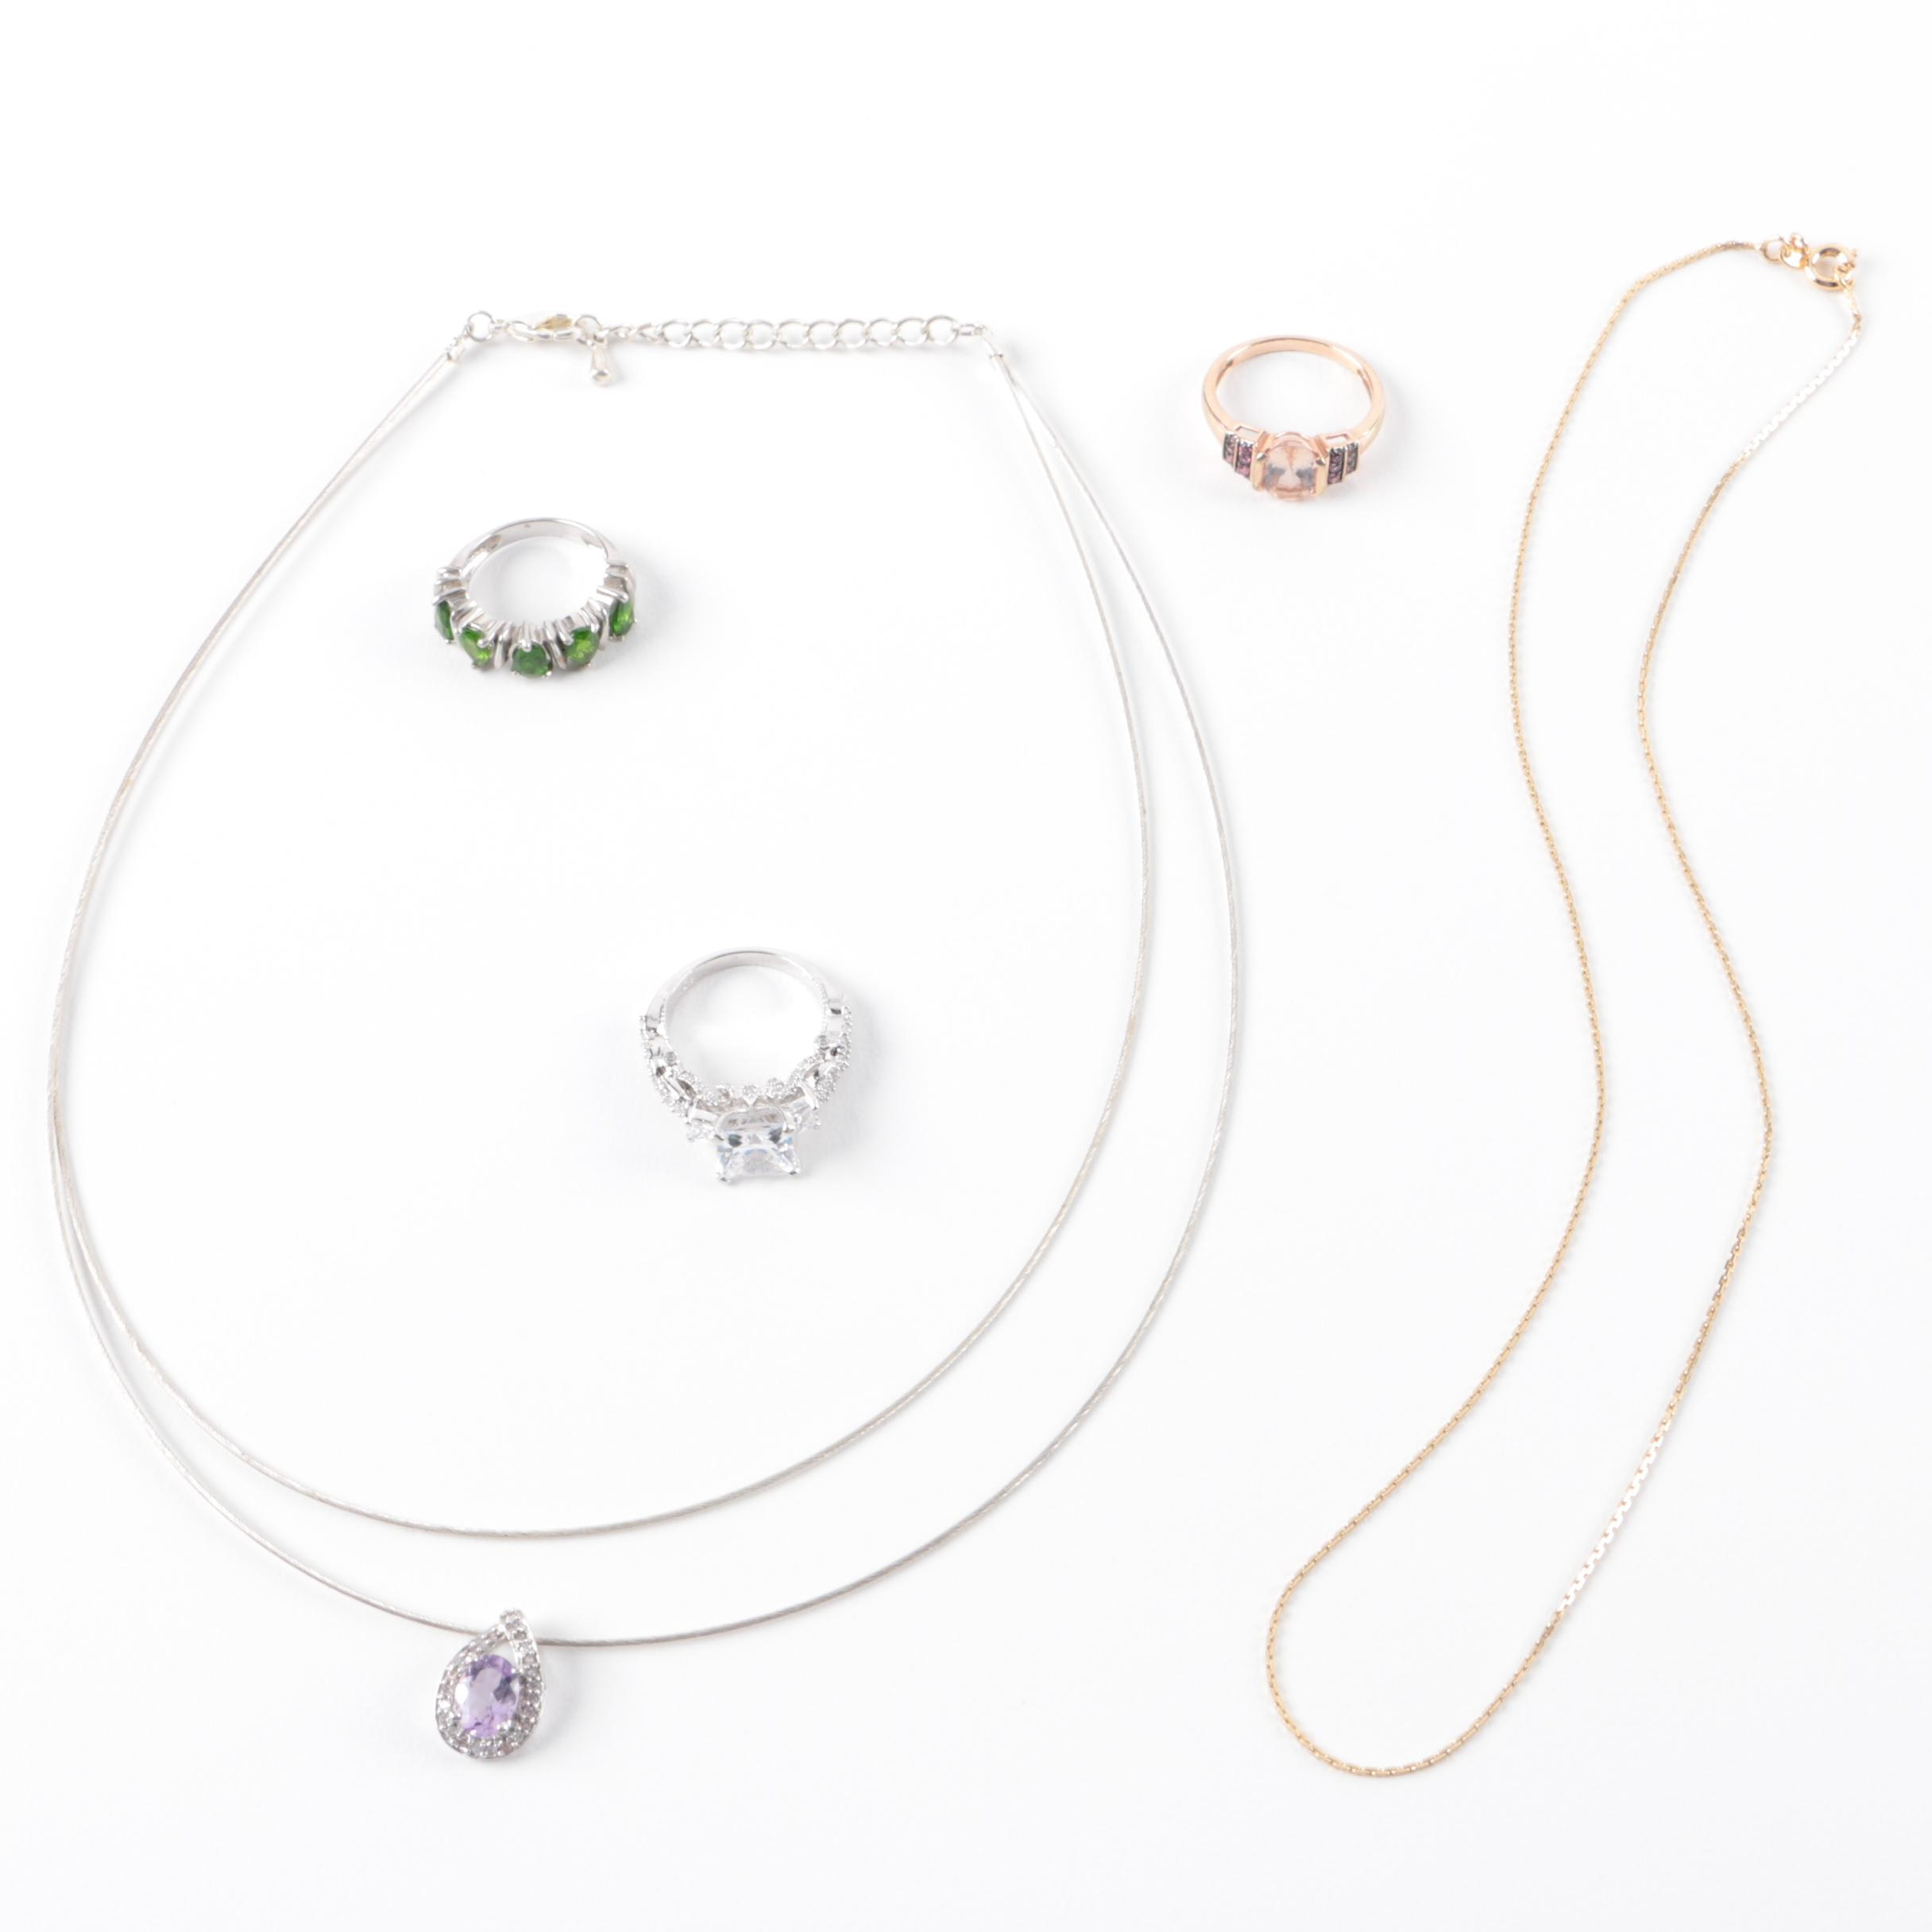 Costume Jewelry Assortment Including 10K Gold Amethyst and Diamond Pendant